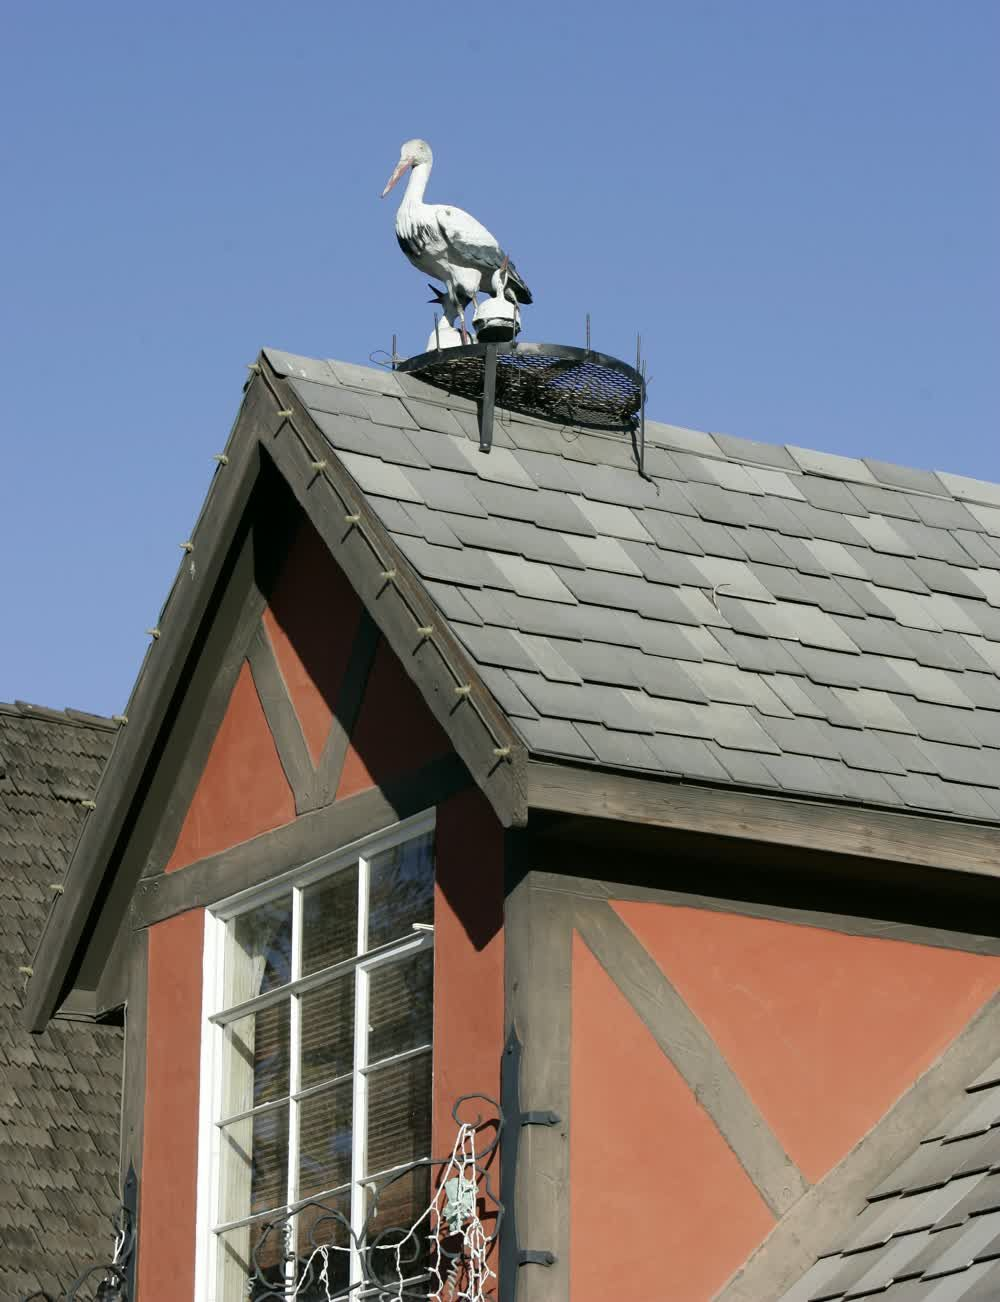 title: Stork Statue on Rooftop in Solvang